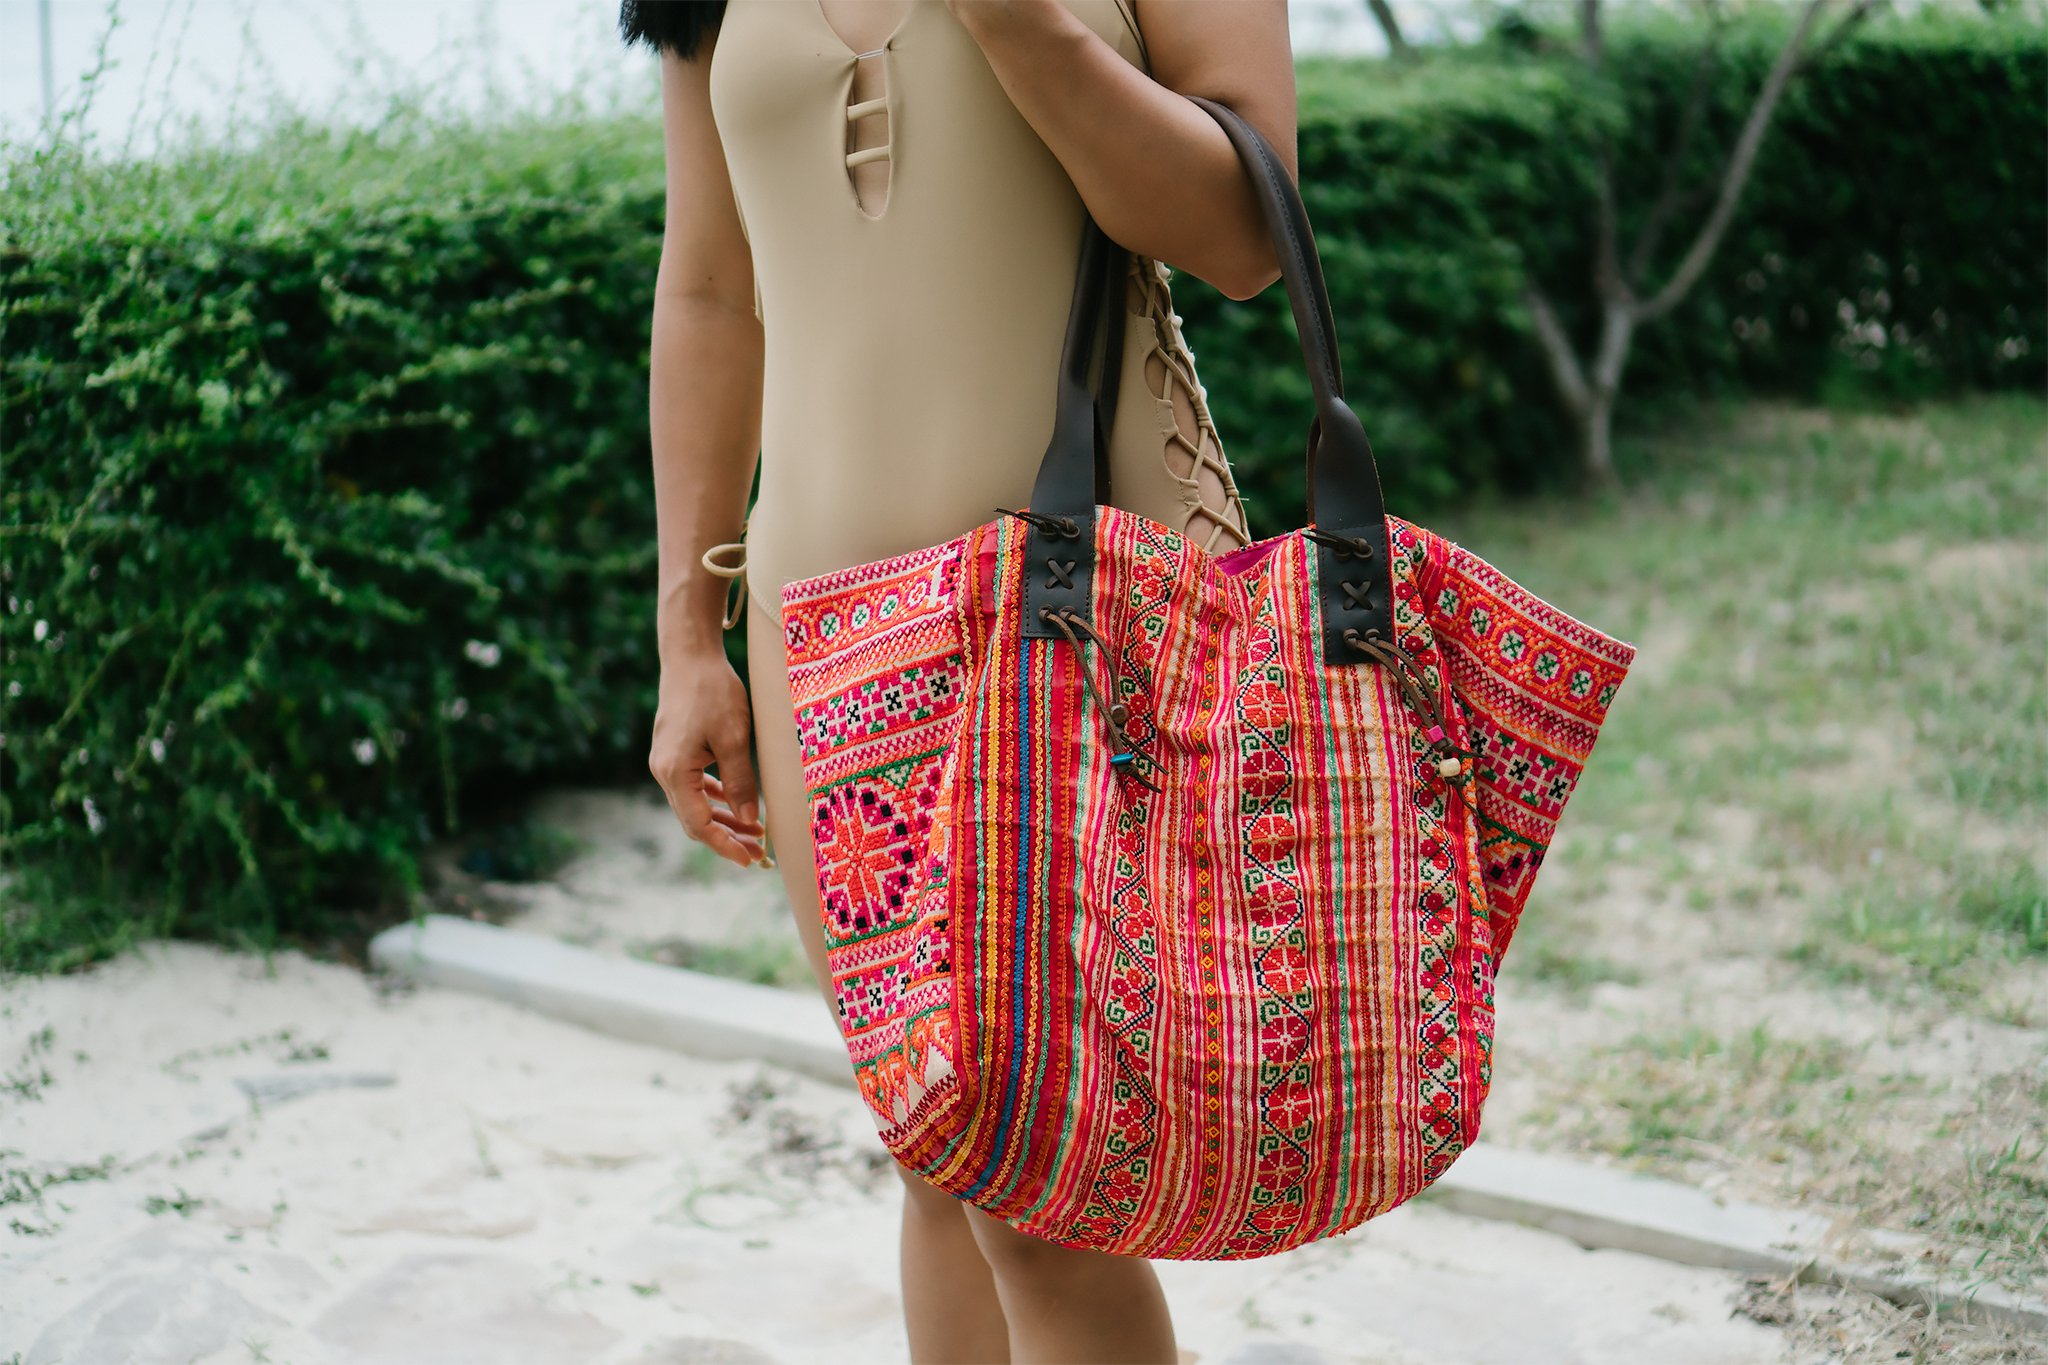 Changnoi Vintage Summer Tote Bag for Women with Hmong Hill Tribe Embroidered, Leather Strap - handmade-bags